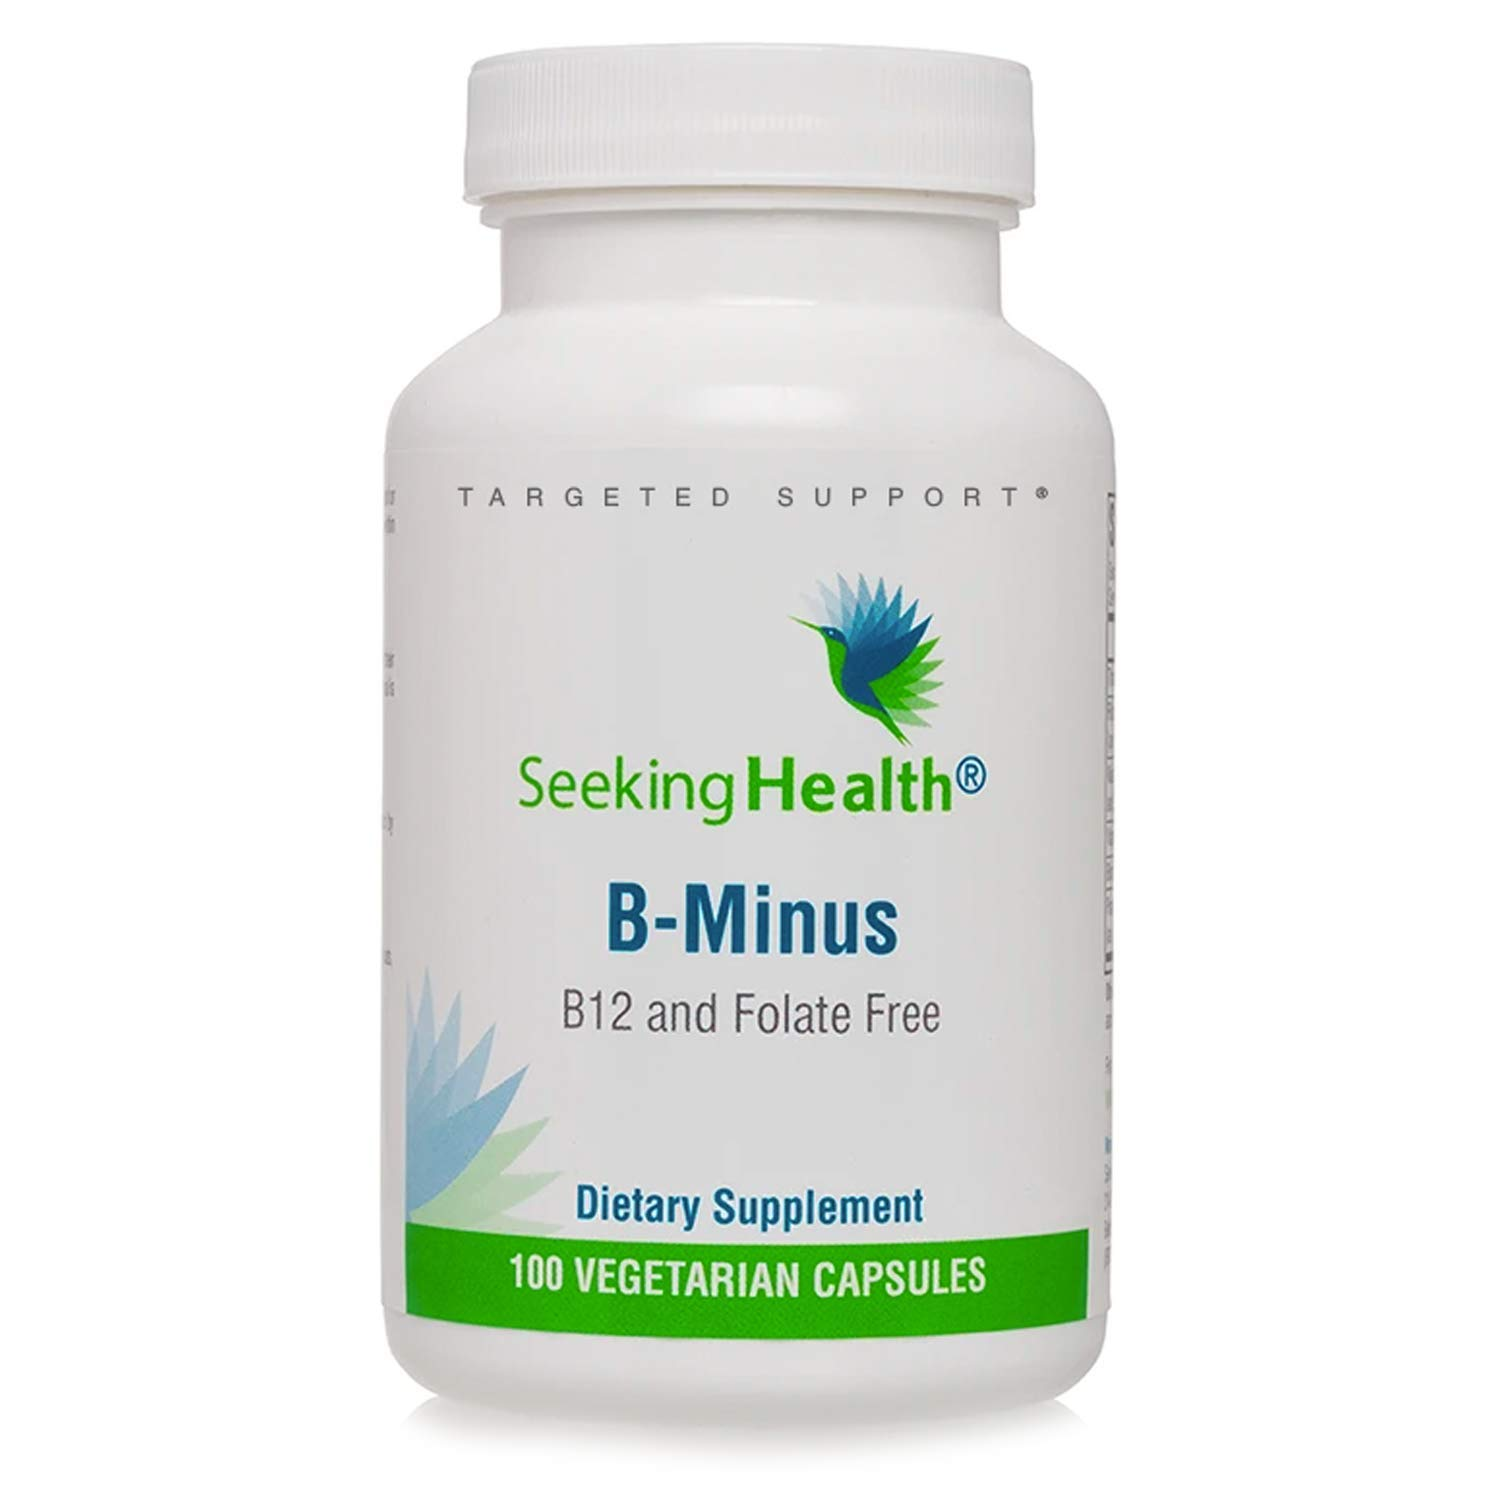 Seeking Health B Minus – Vitamin B Complex – Biotin Vegetarian Capsules – Biotin Supplement for Women – Supports Metabolic Functioning* – 100 Capsules